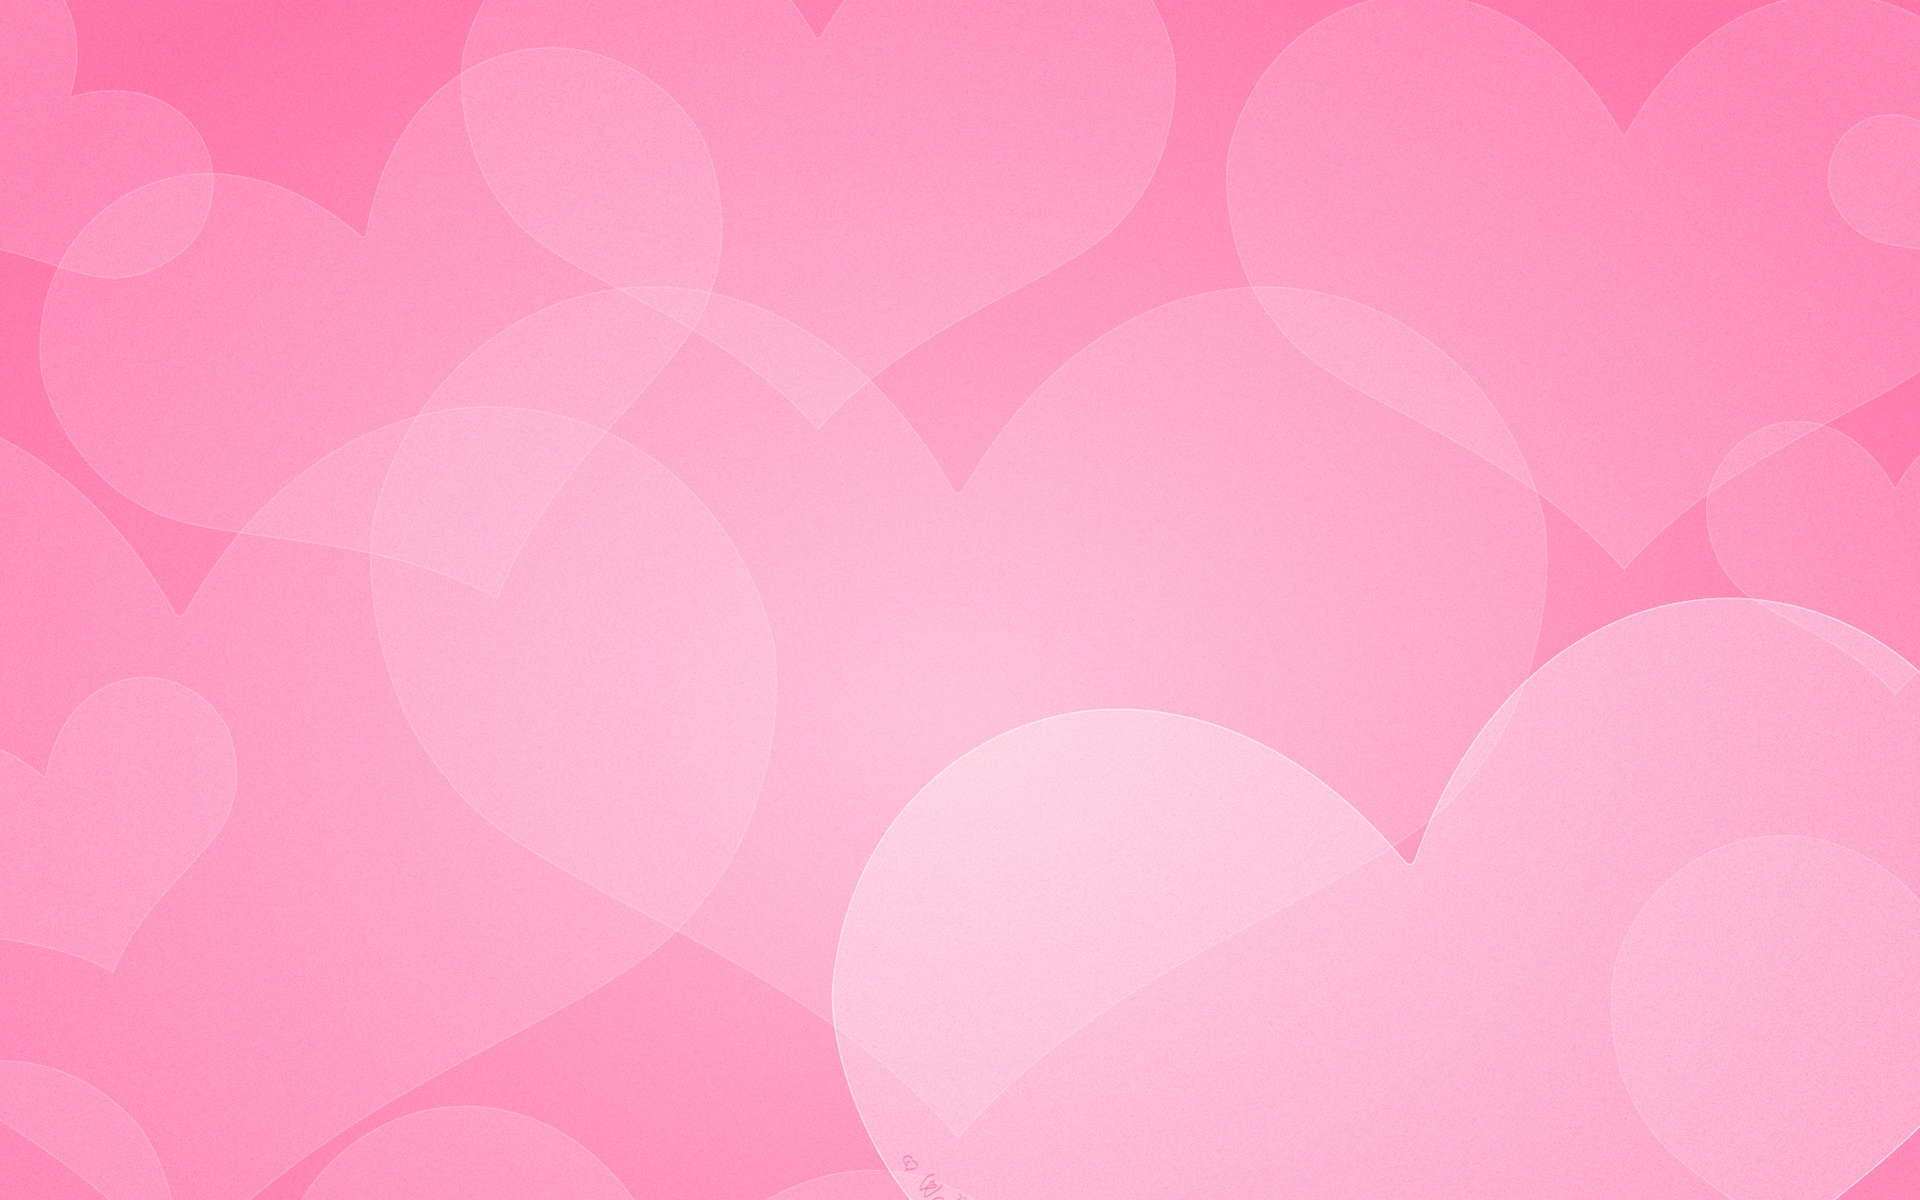 Pink Heart Wallpapers - WallpaperSafari